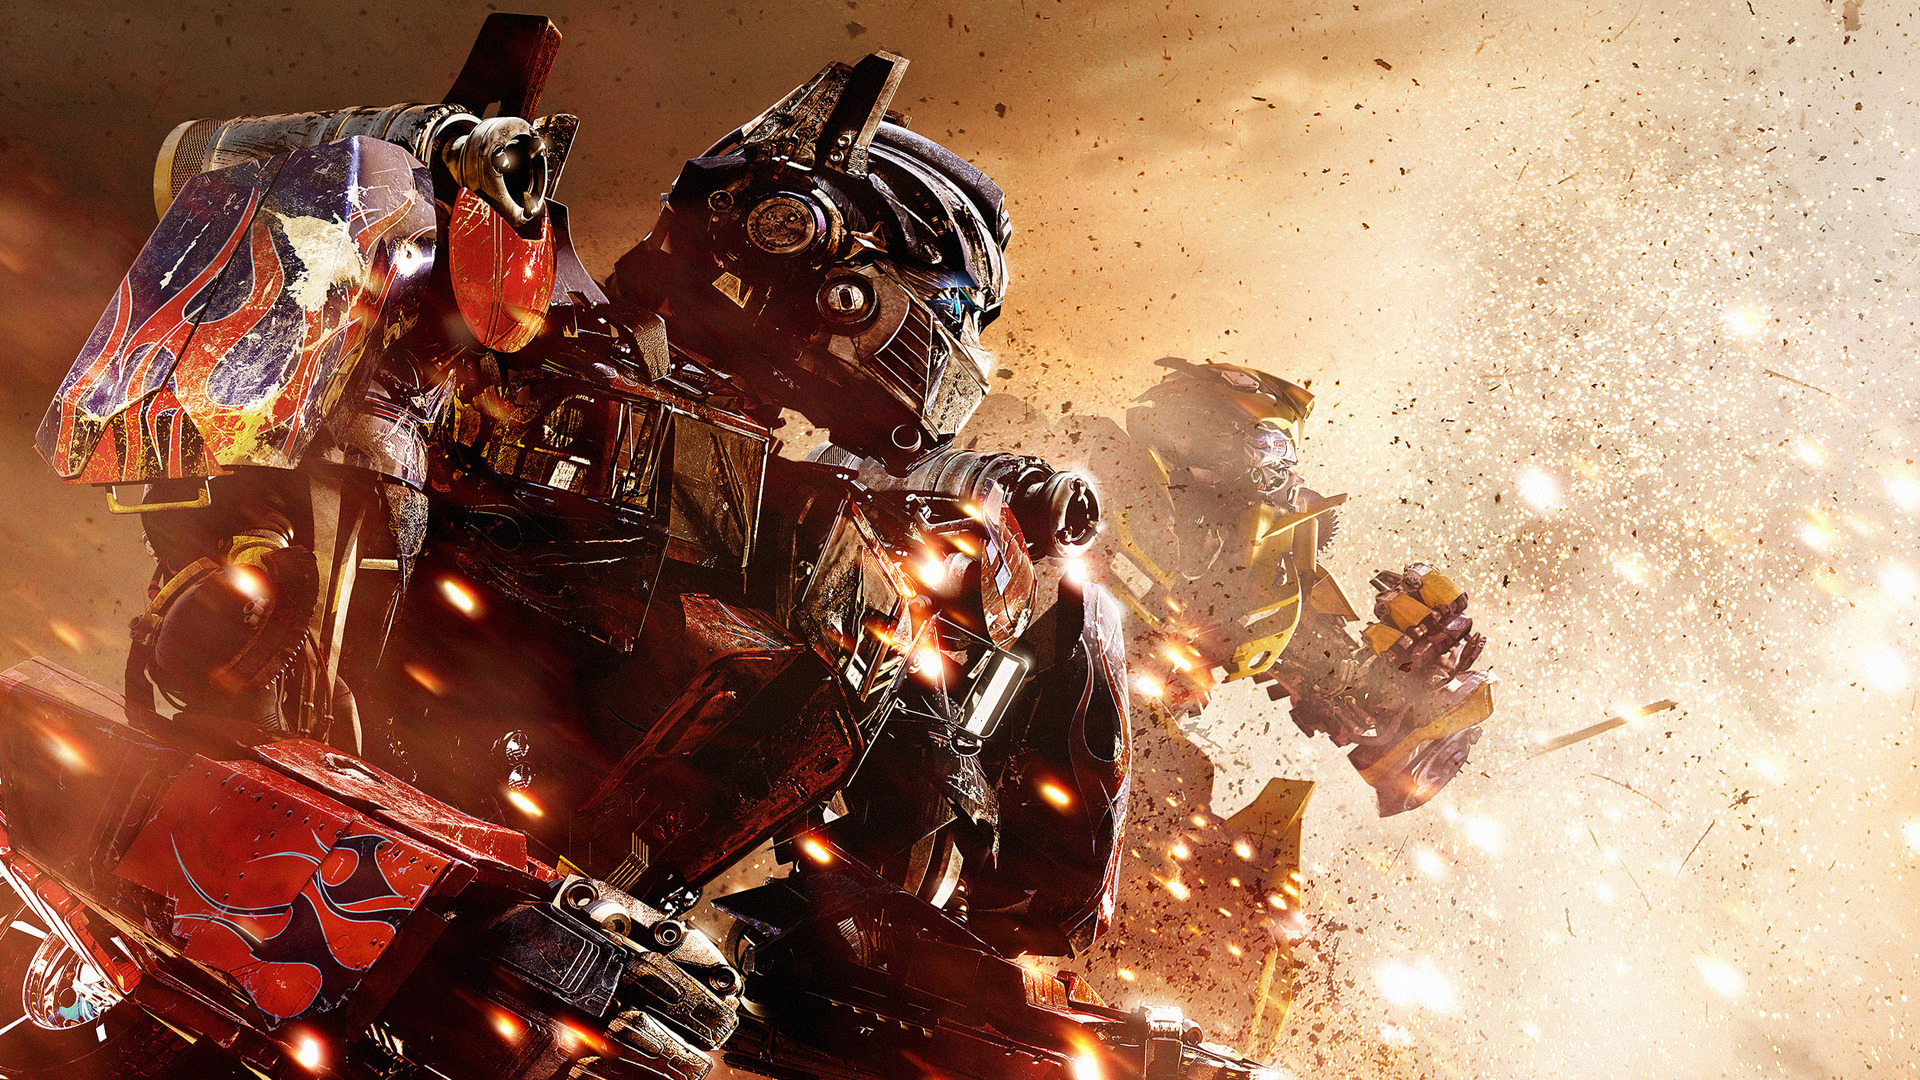 Optimus Bumblebee in Transformers 3 Wallpapers HD Wallpapers 1920x1080